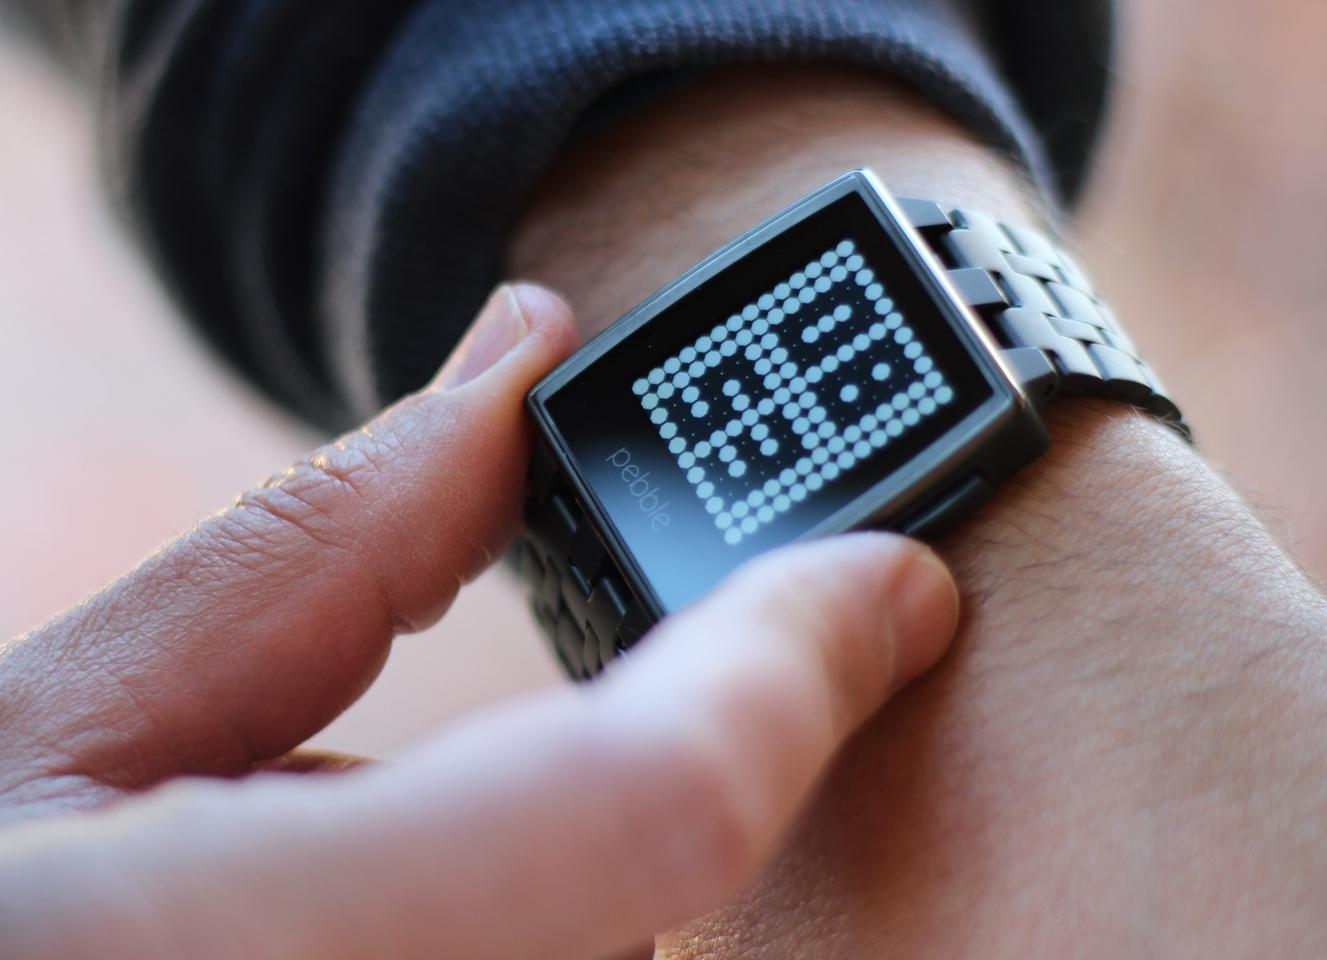 Pebble Steel (Photo: Will Shanklin/Gizmag.com)